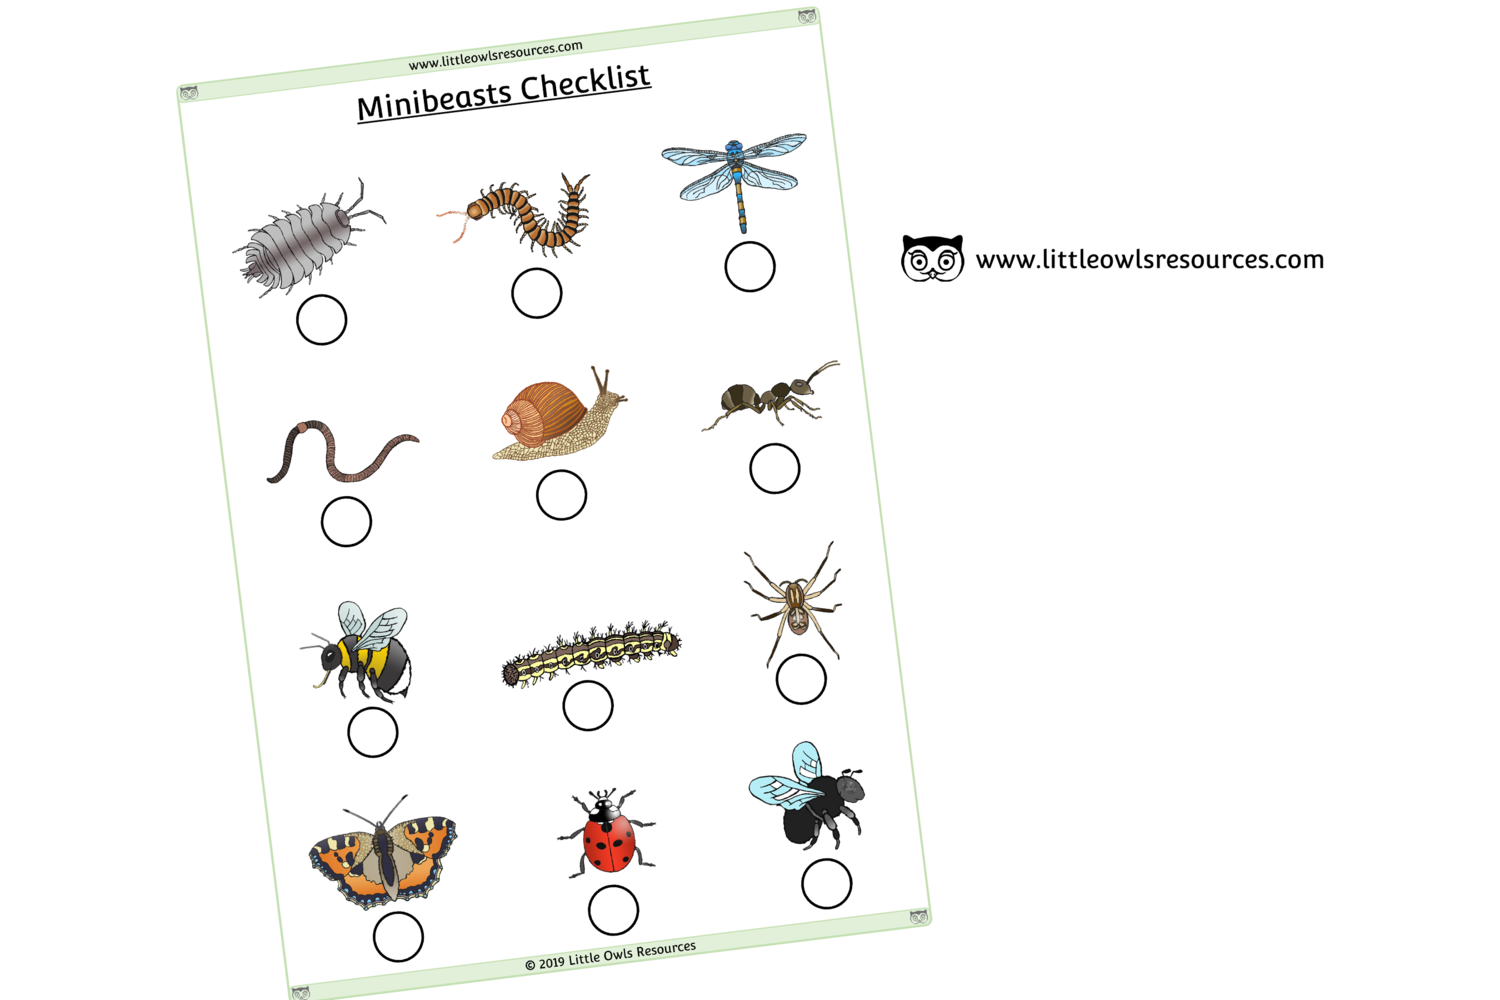 Free Minibeasts Checklist Printable Early Years Ey Eyfs